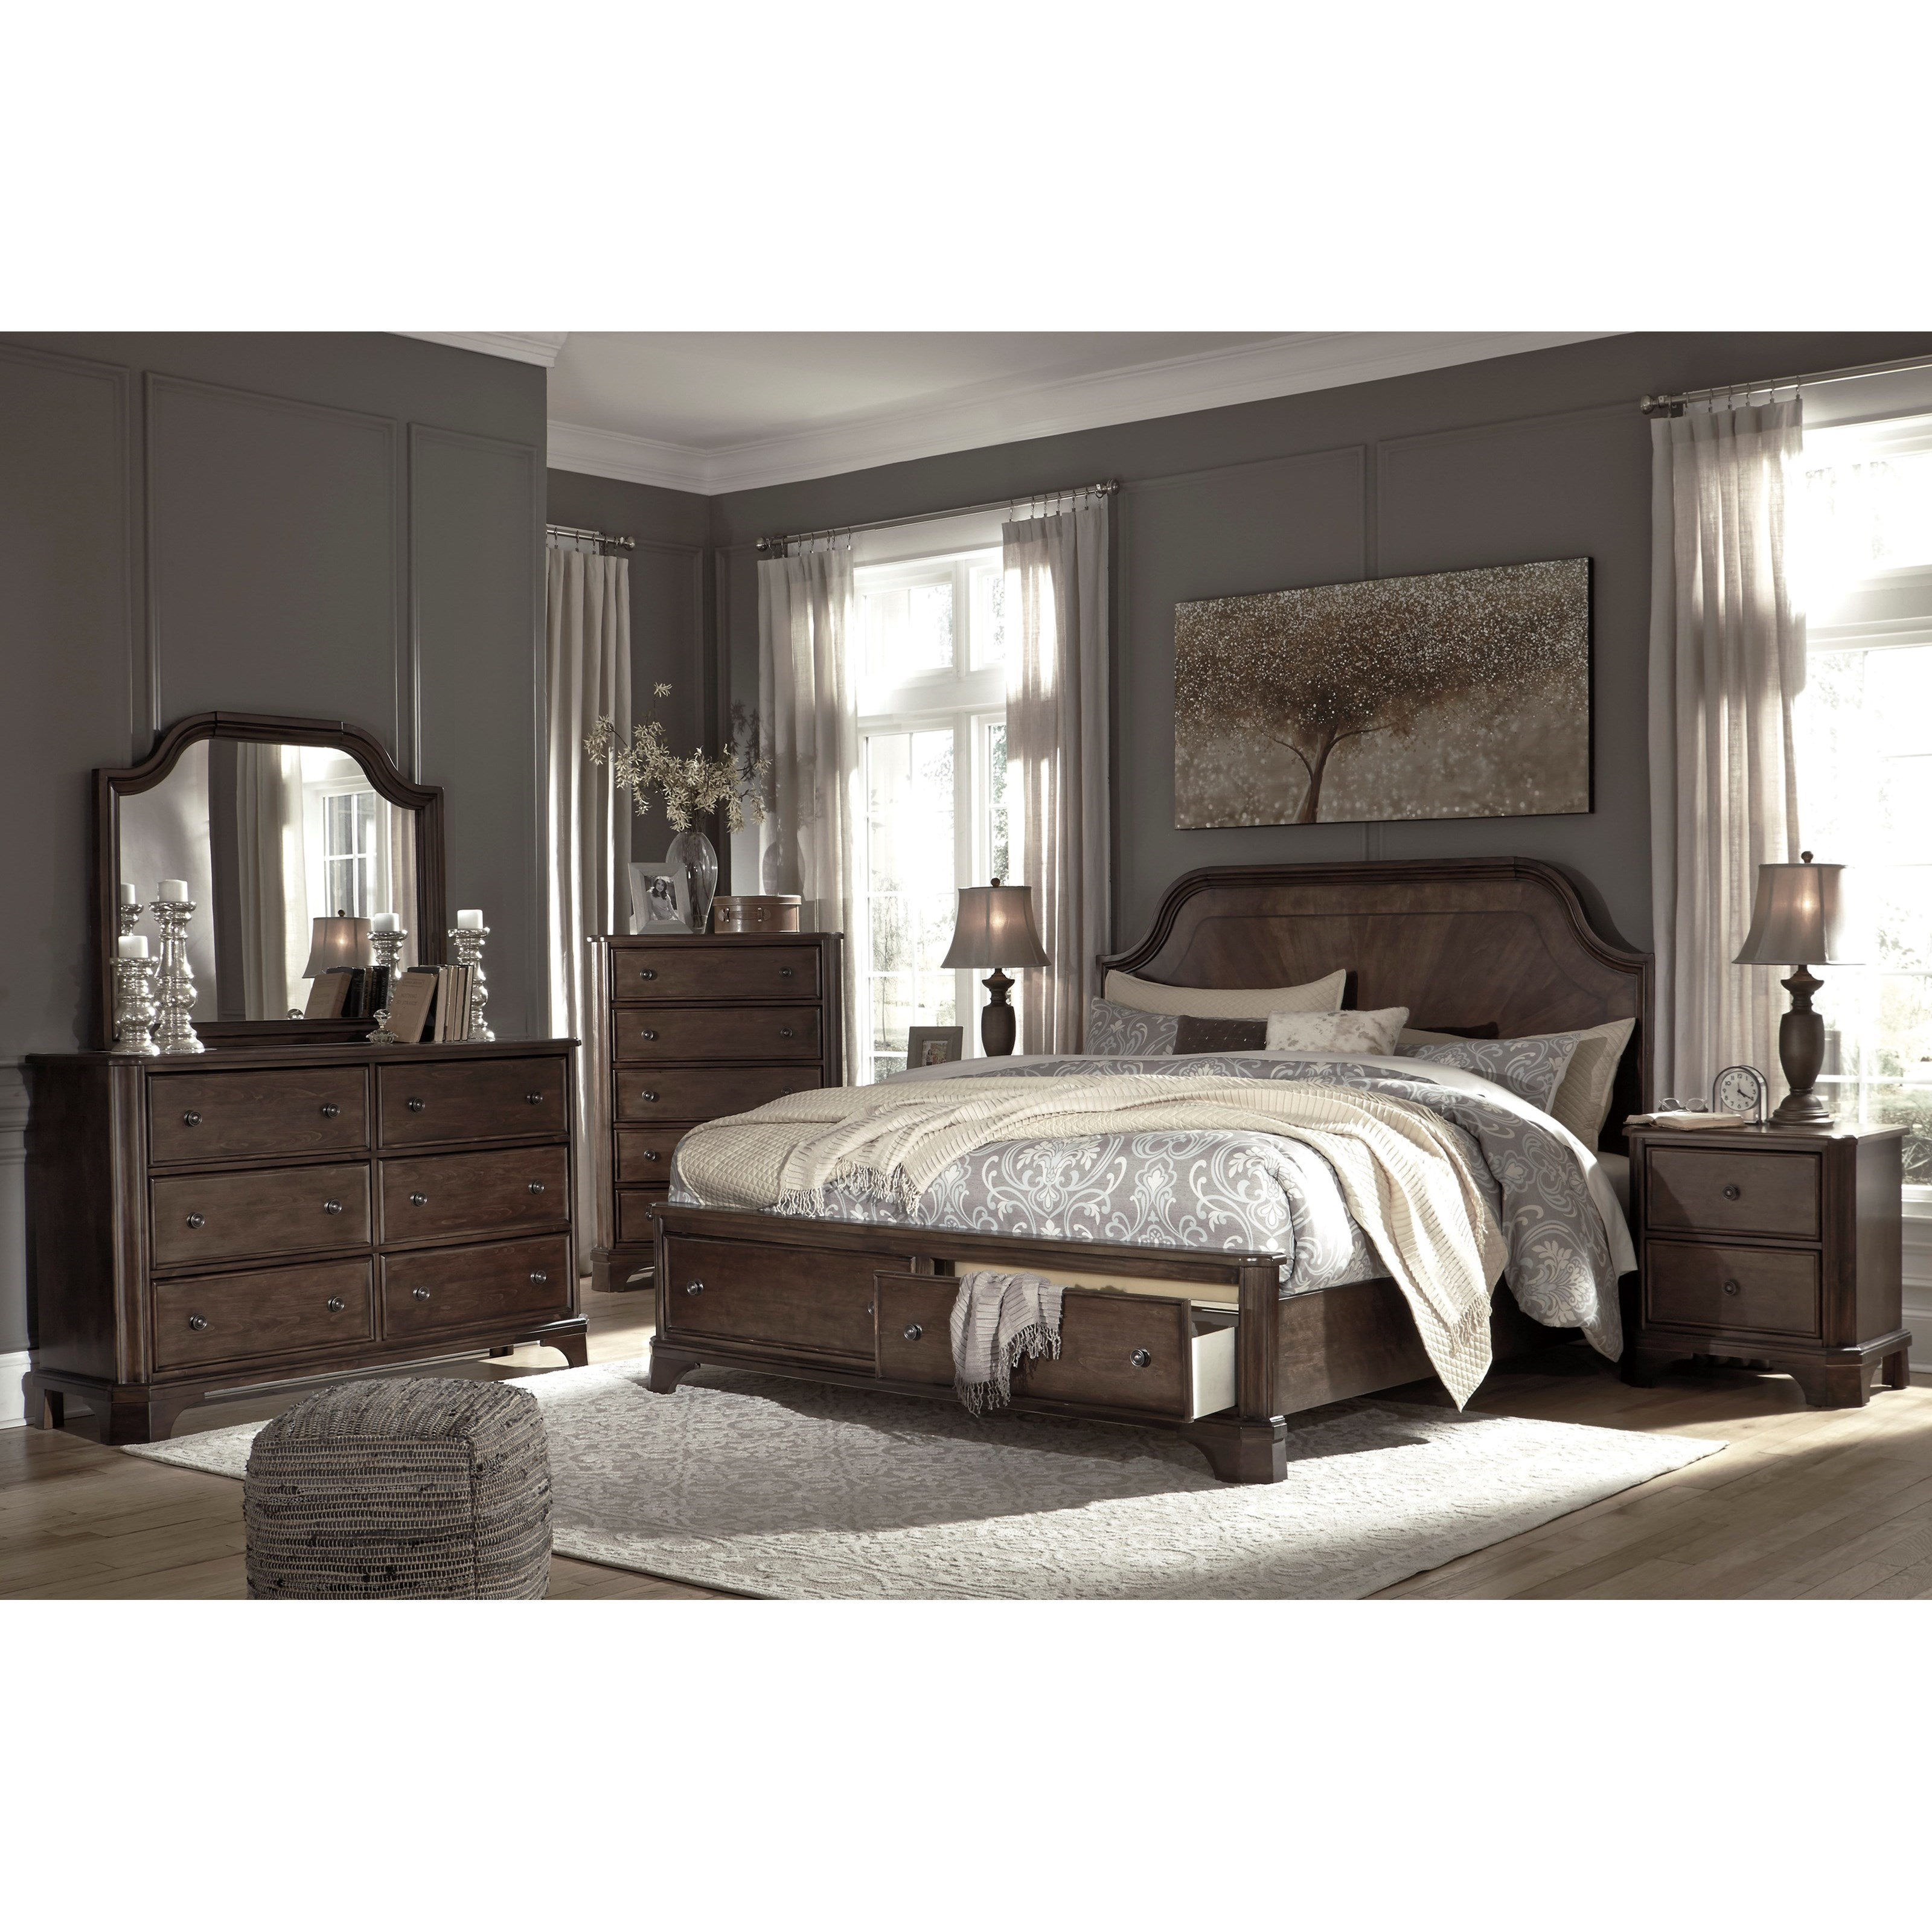 Adinton King Bedroom Group by Signature Design by Ashley at Suburban Furniture